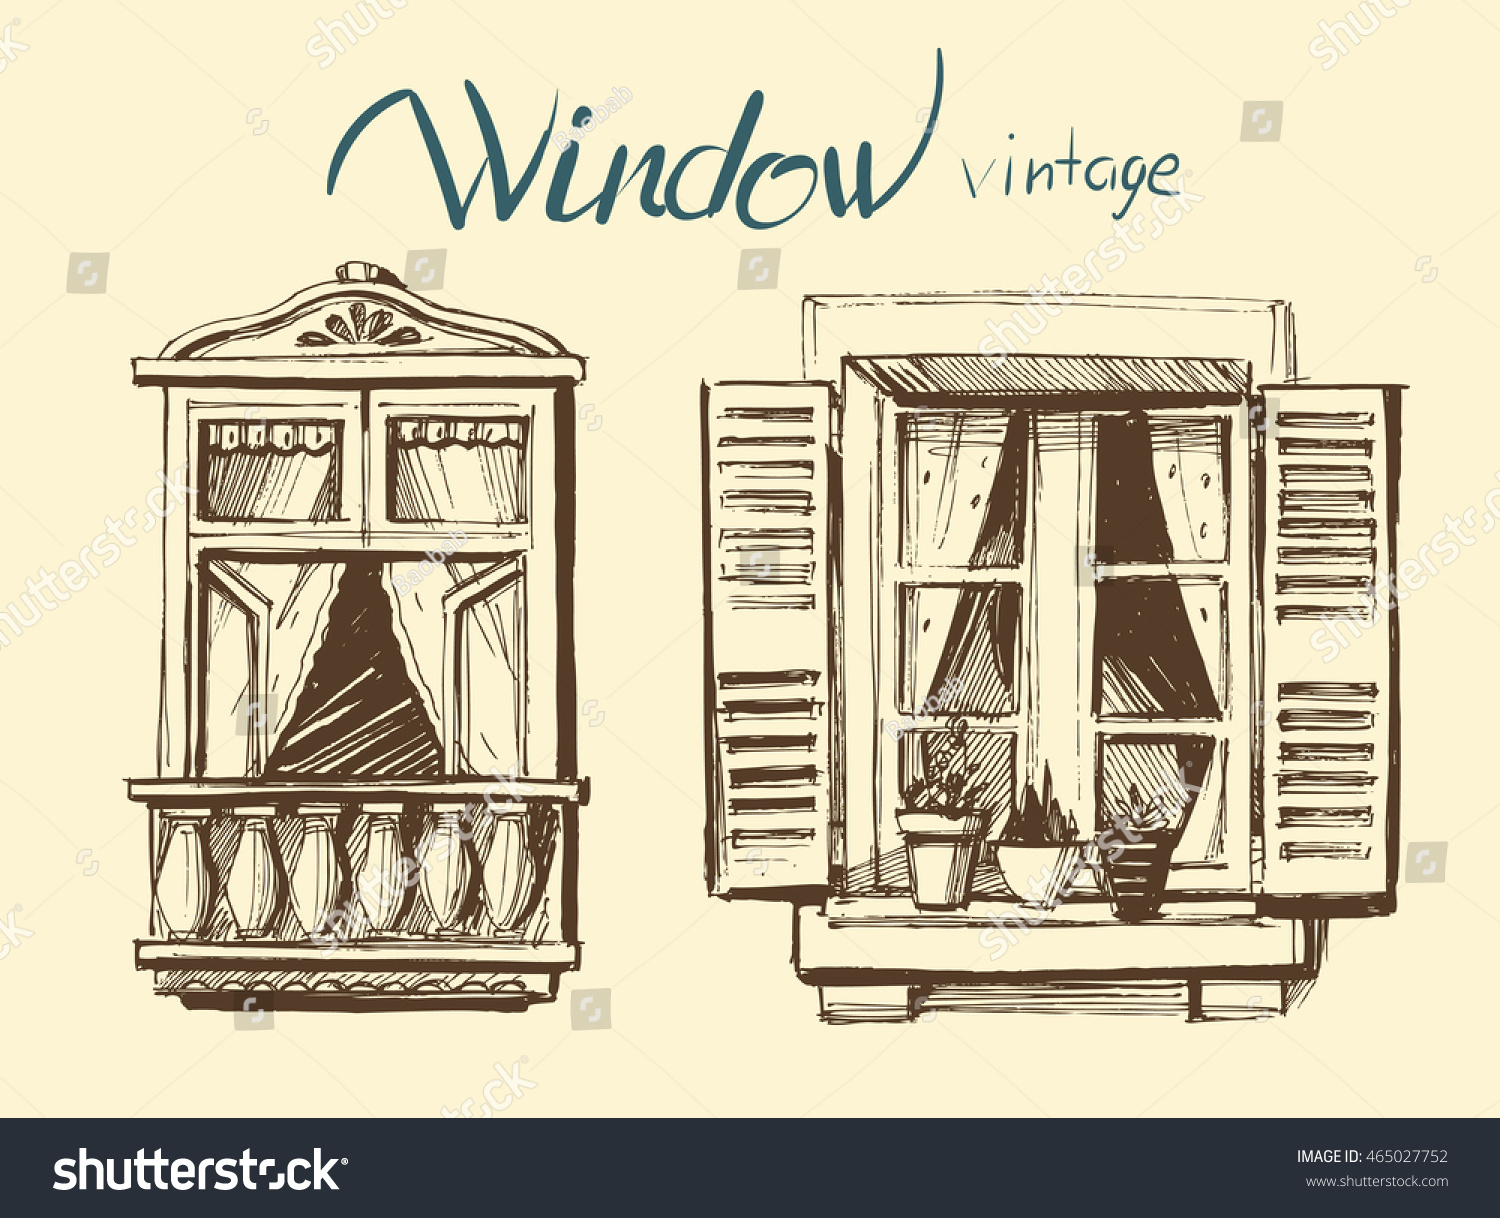 Vintage window vector sketch stock vector 465027752 for Window design sketch